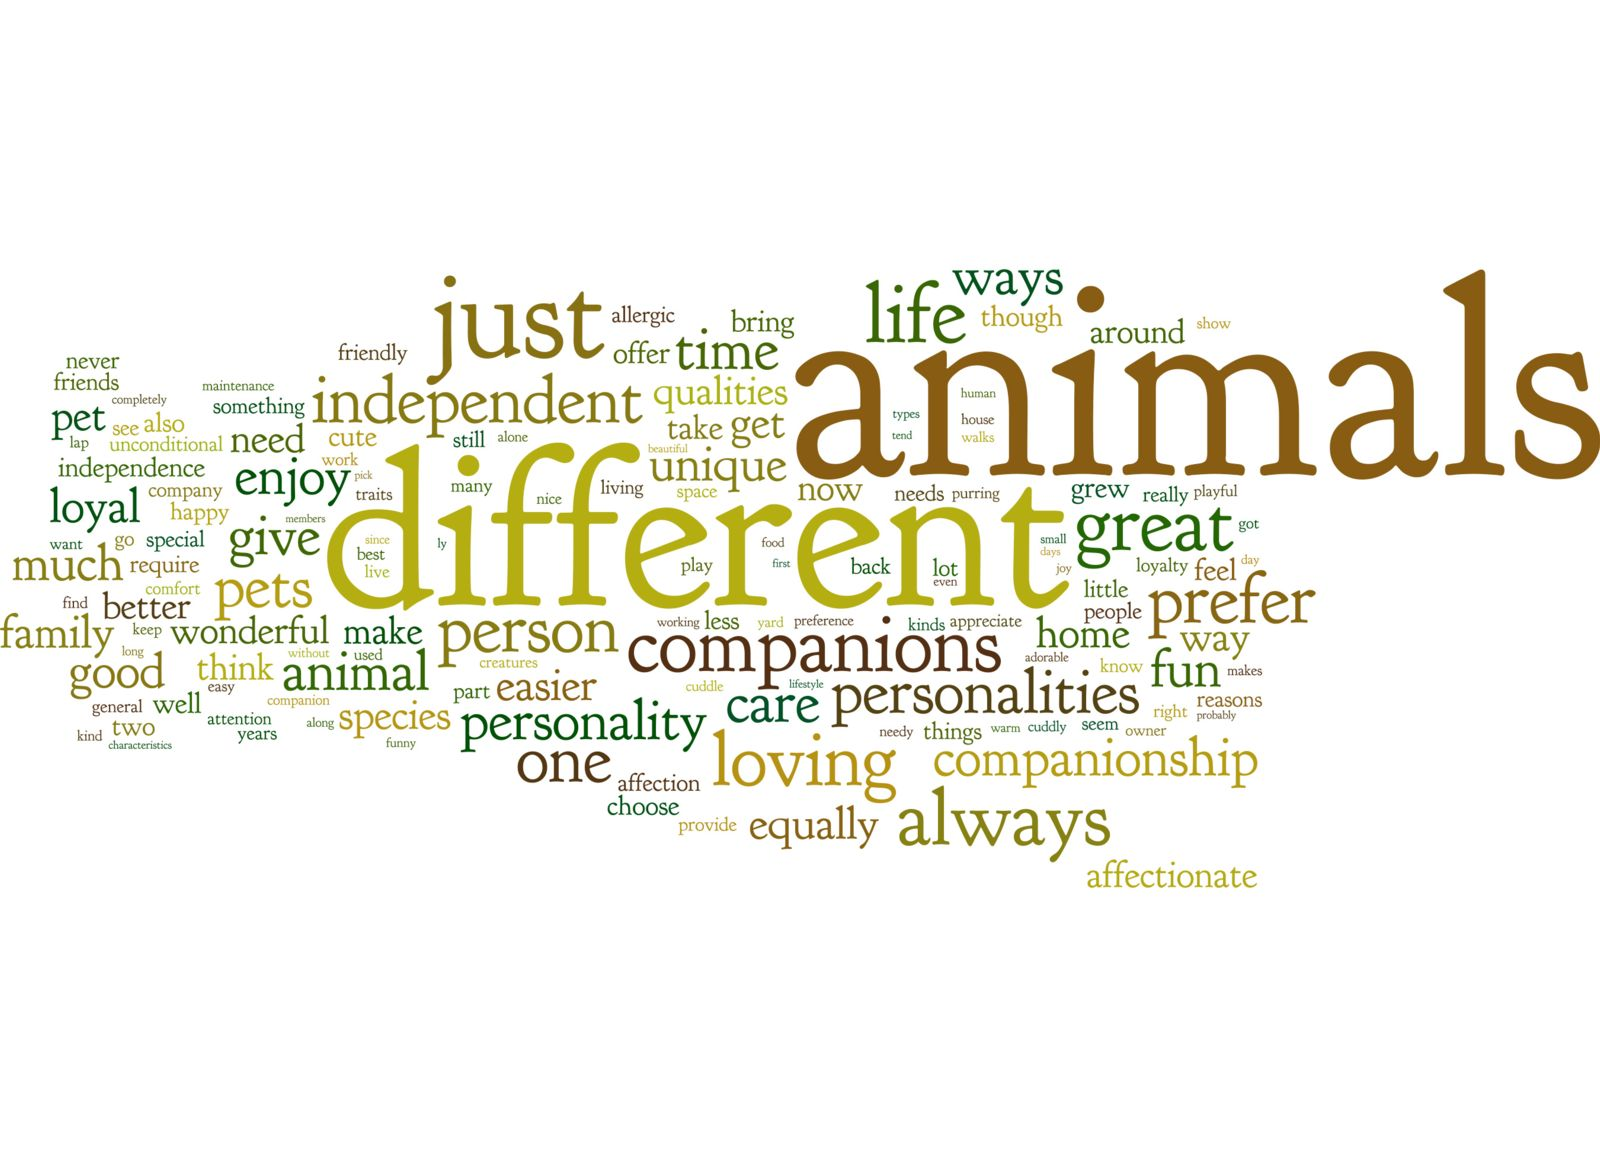 dog and cat people reveal why they love their animals scientific word cloud generated from responses by 909 participants who described themselves as both cat and dog people click to enlarge personality